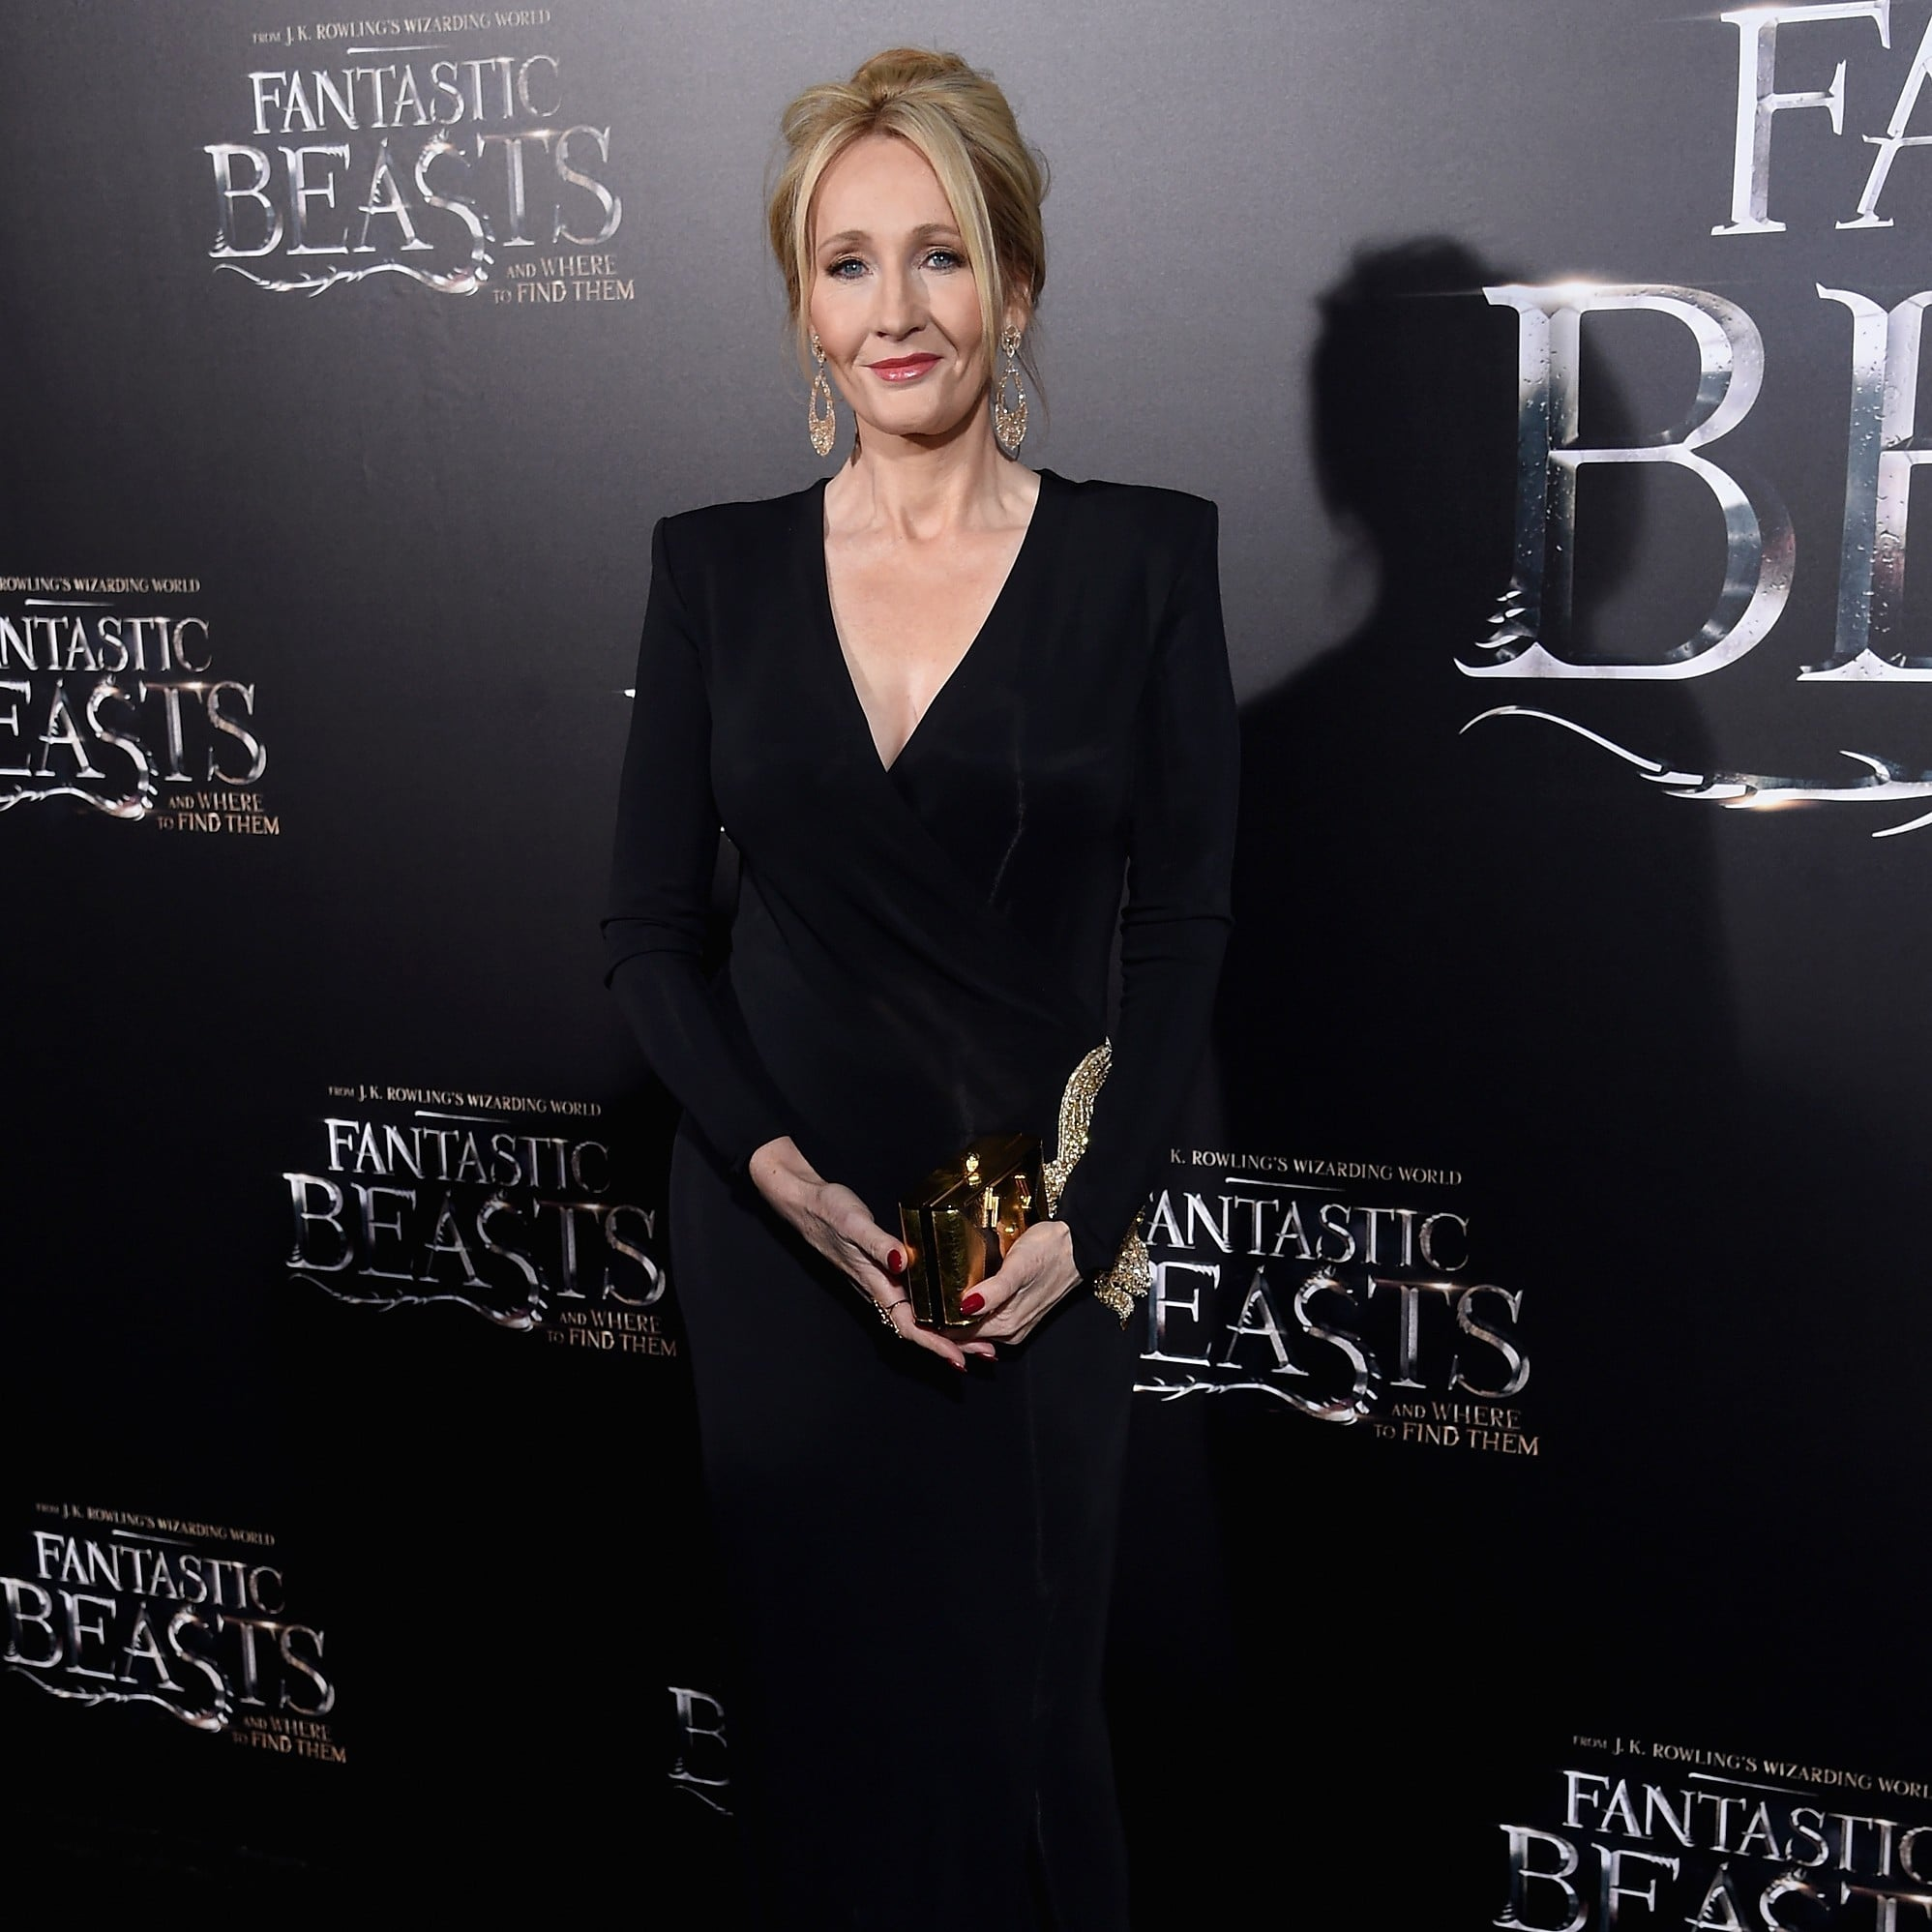 j k rowling entertainment j k rowling at fantastic beasts premiere in nyc 2016